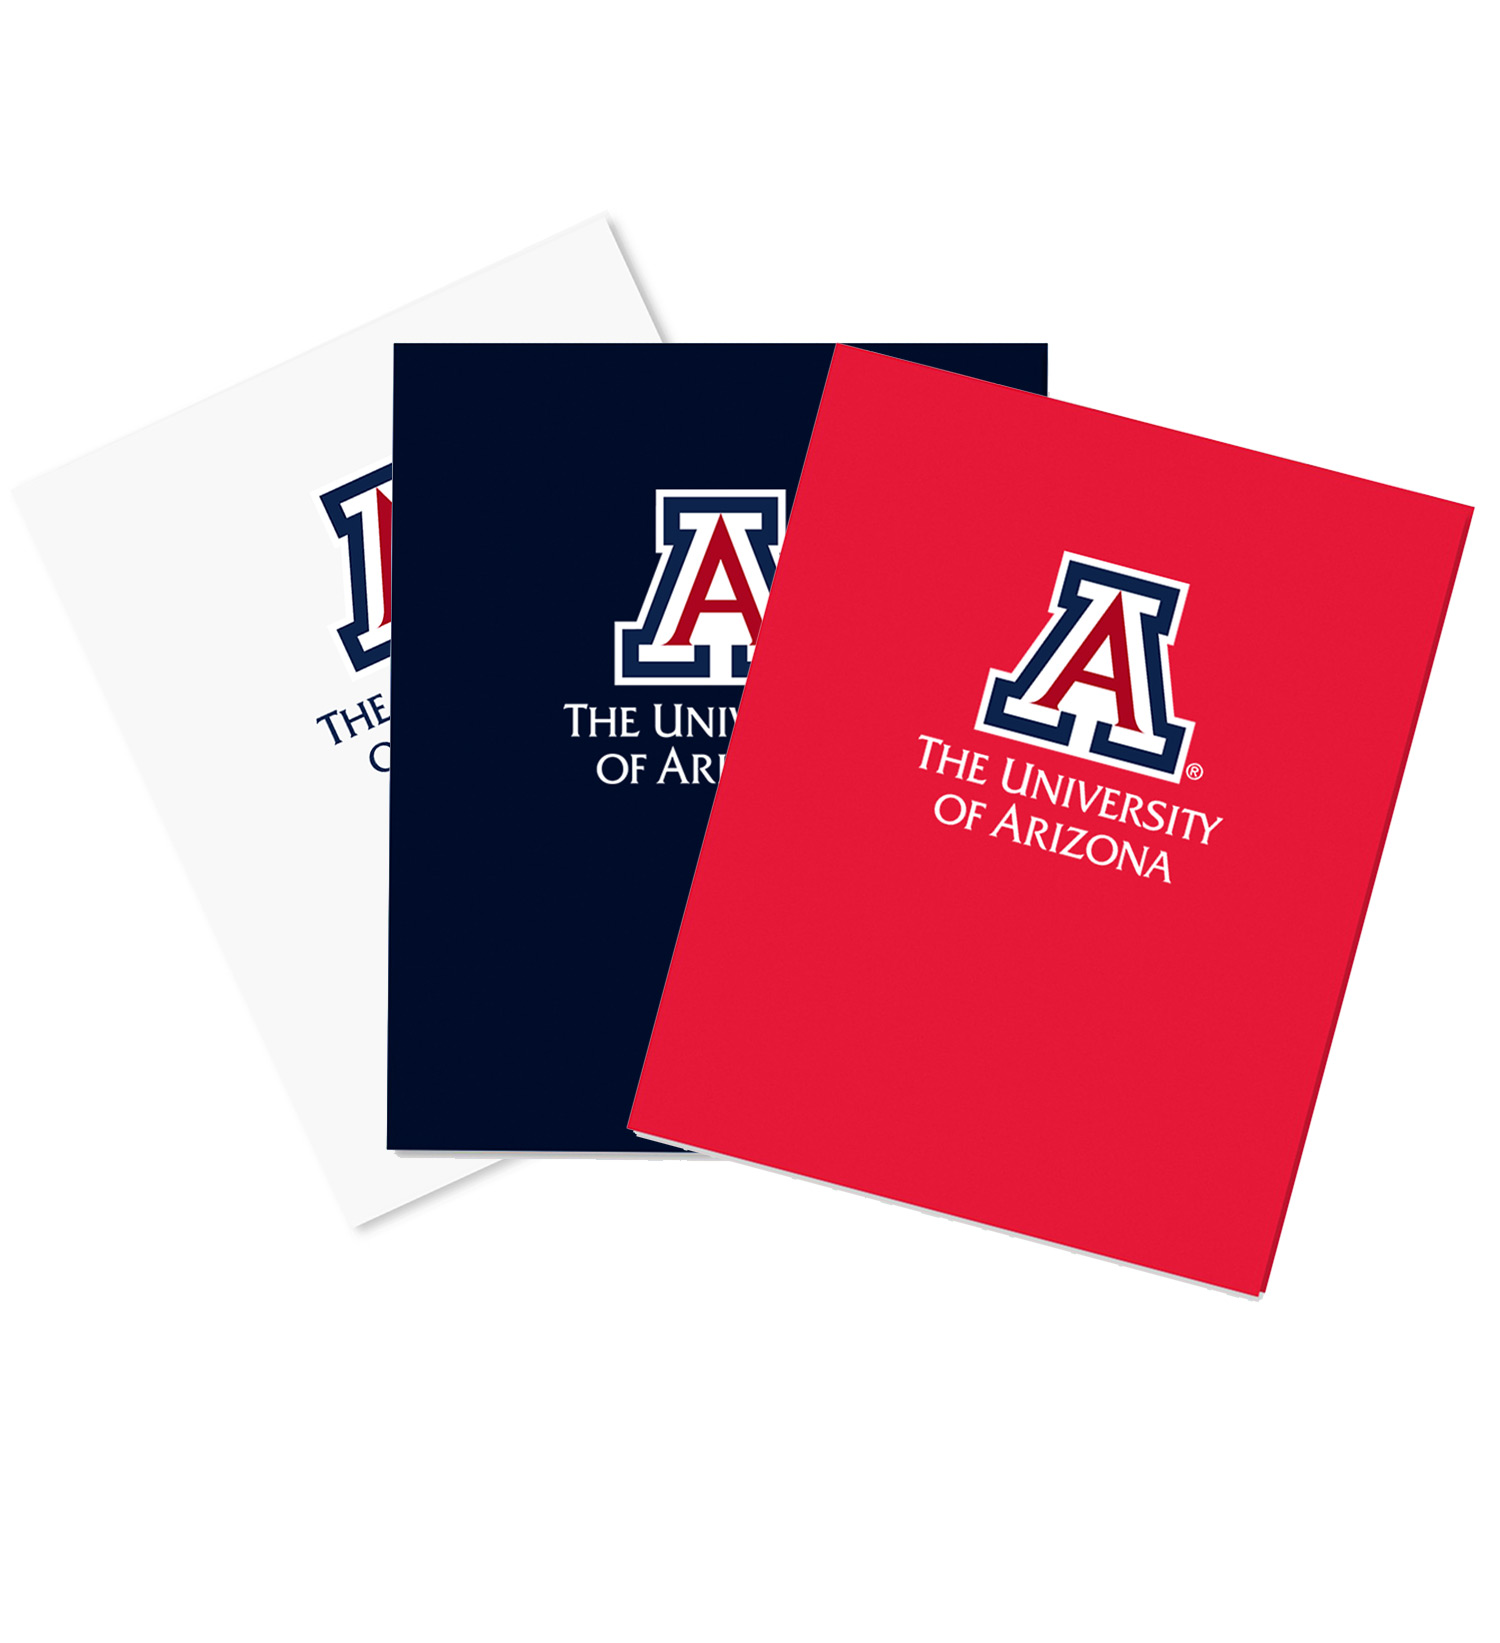 Image For Folder: The University Arizona Logo Laminated High Gloss